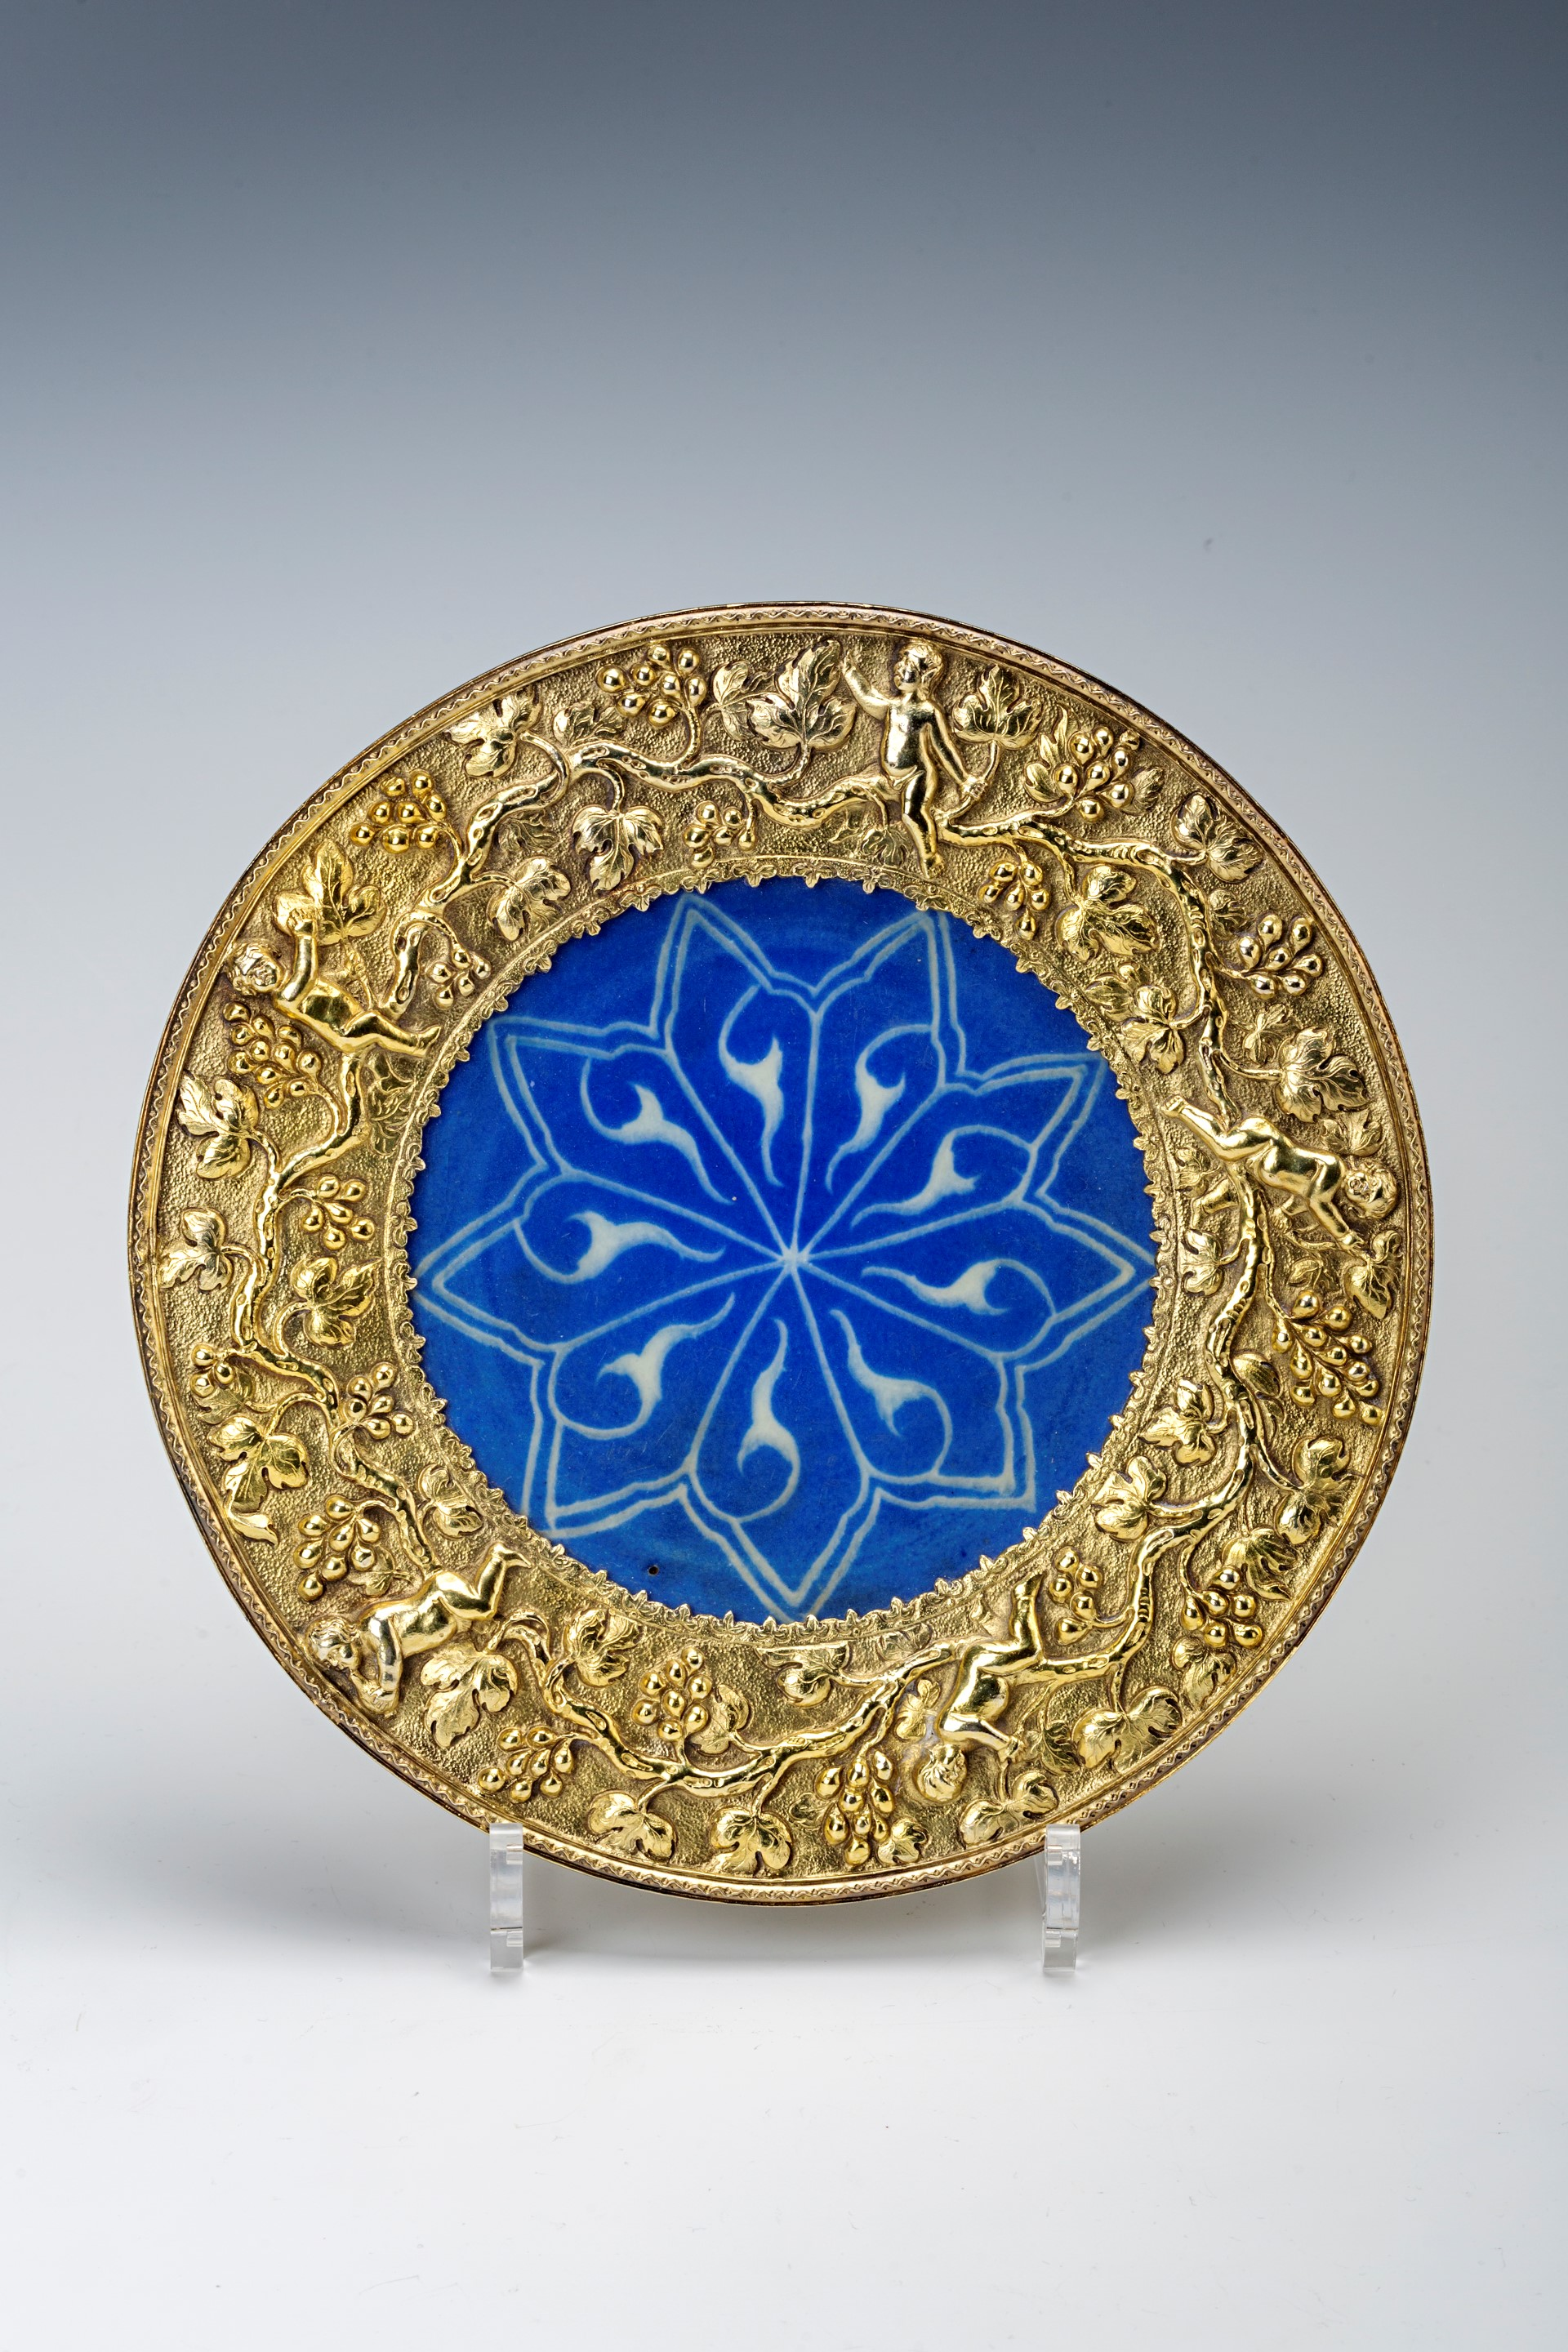 A Persian blue ceramic dish, early 17th Century.